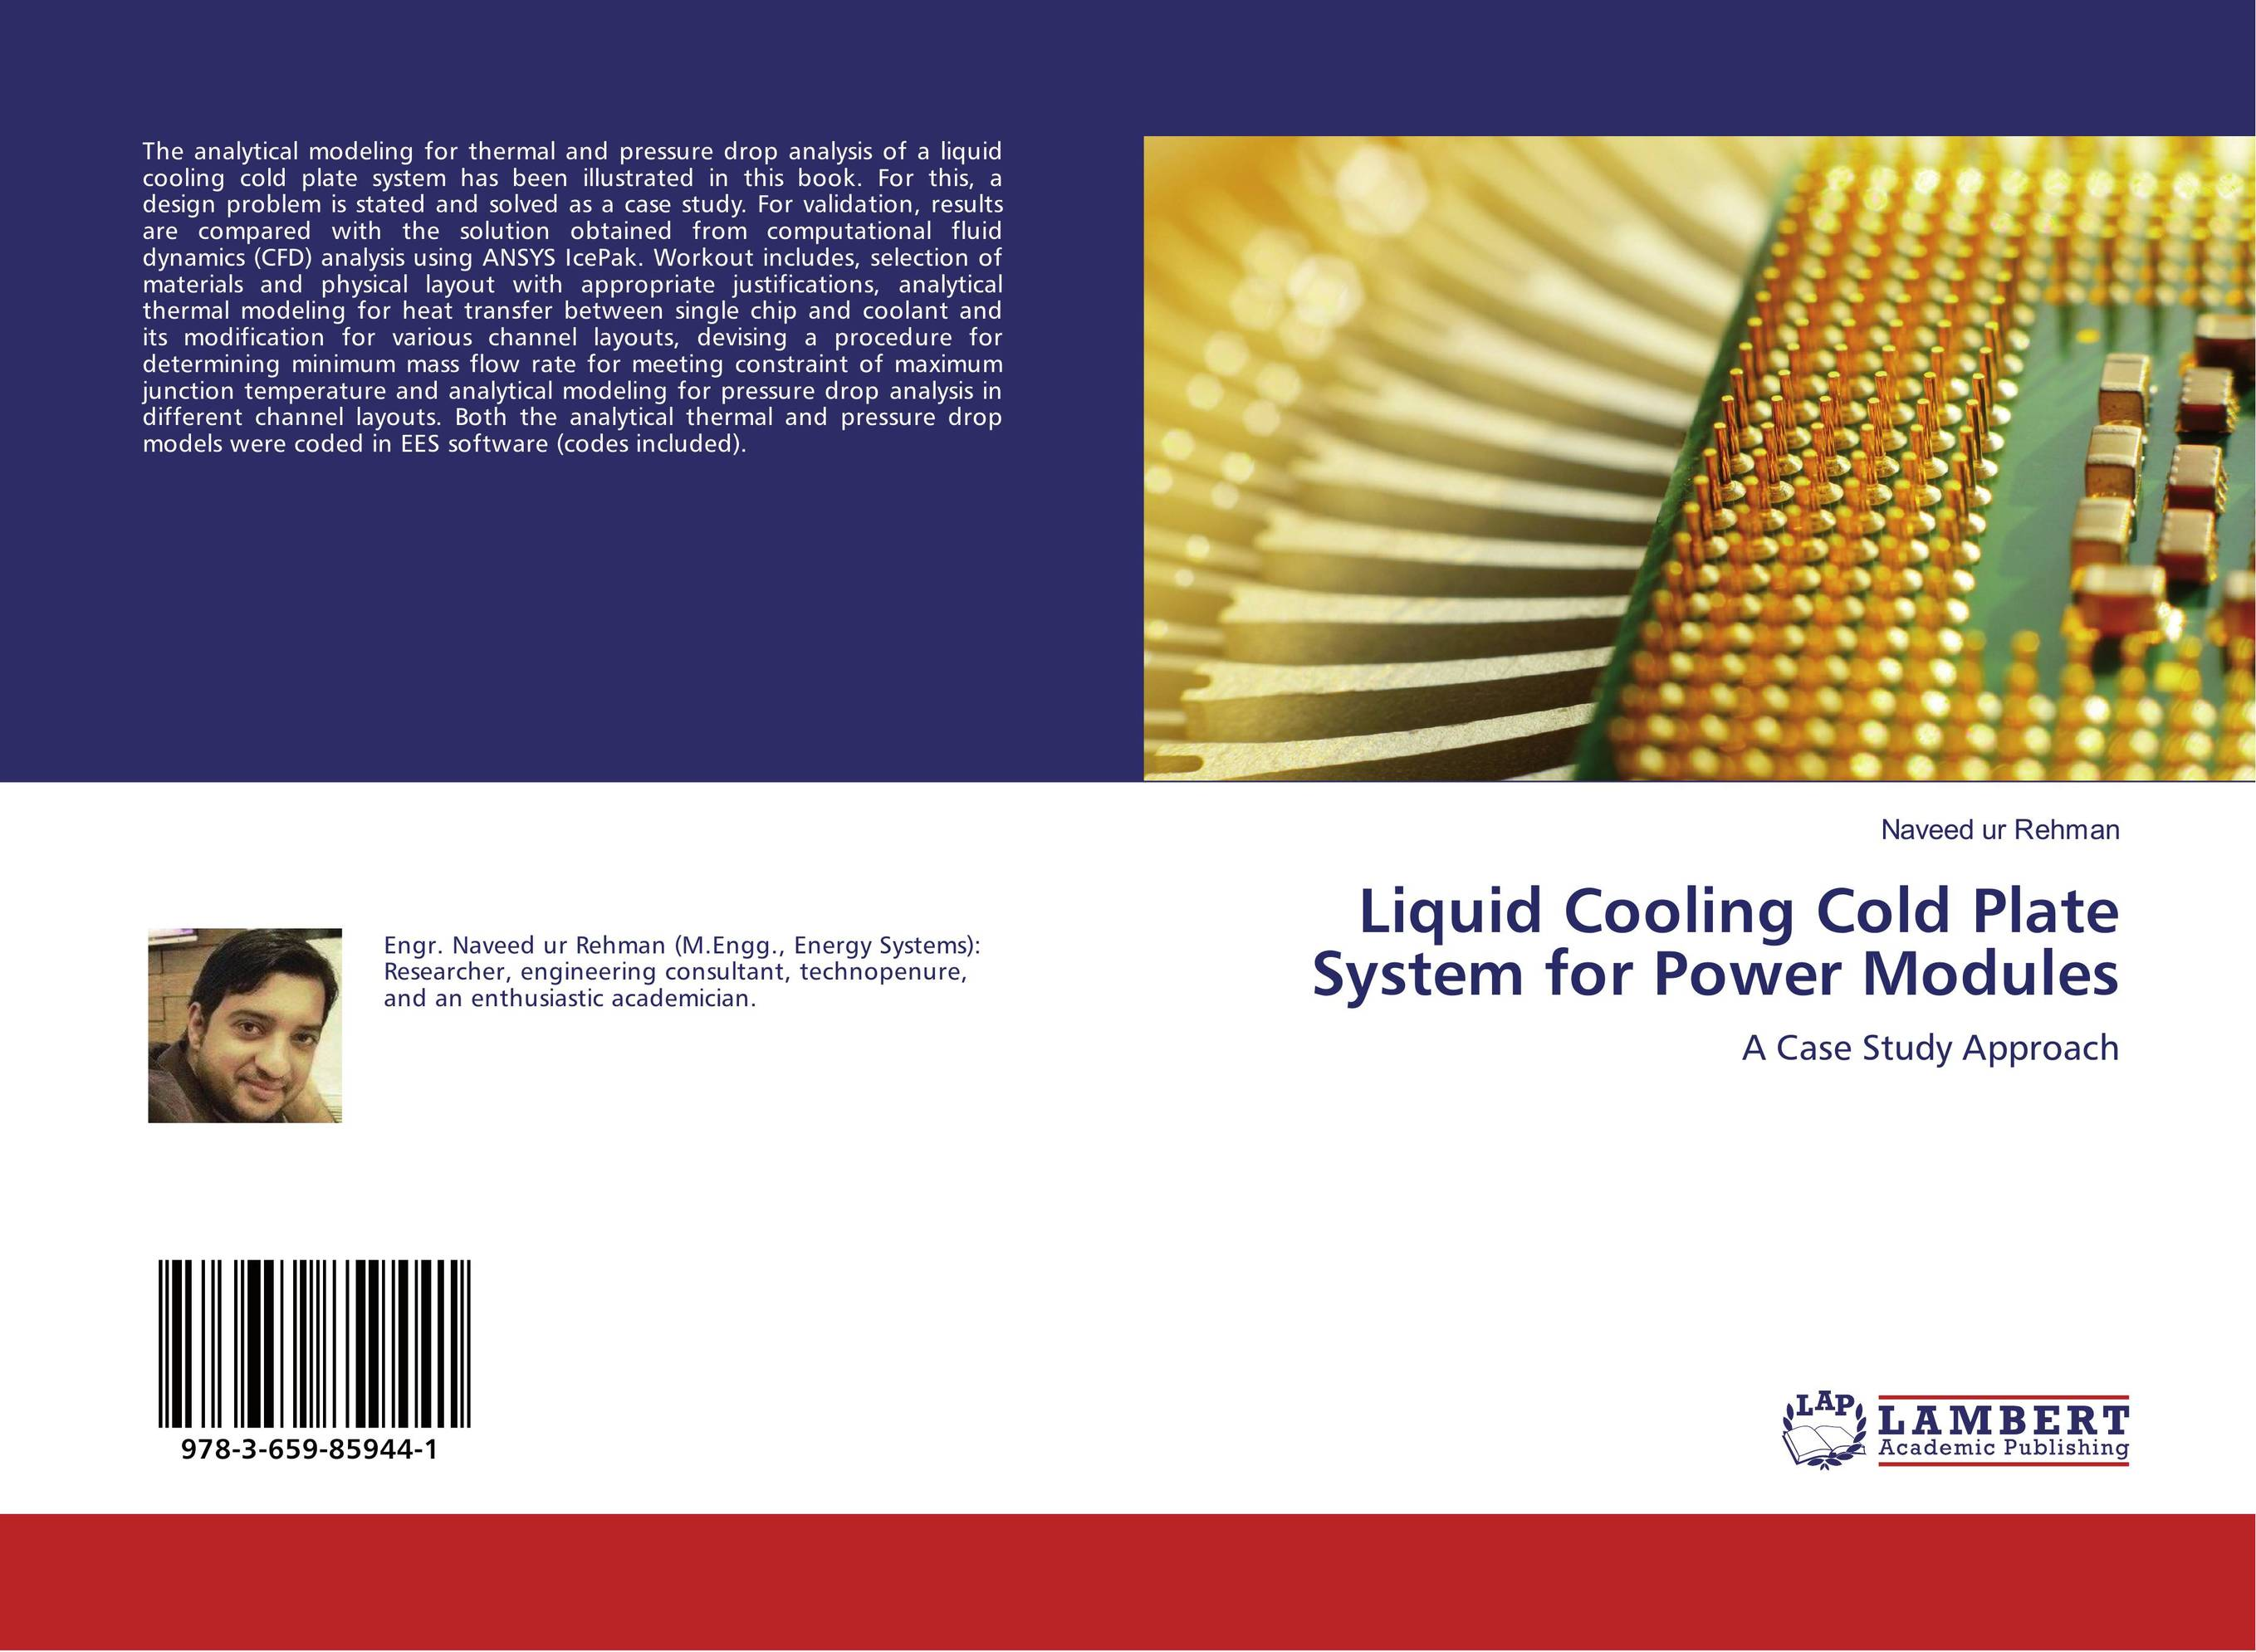 Liquid Cooling Cold Plate System for Power Modules liquid cooling cold plate system for power modules